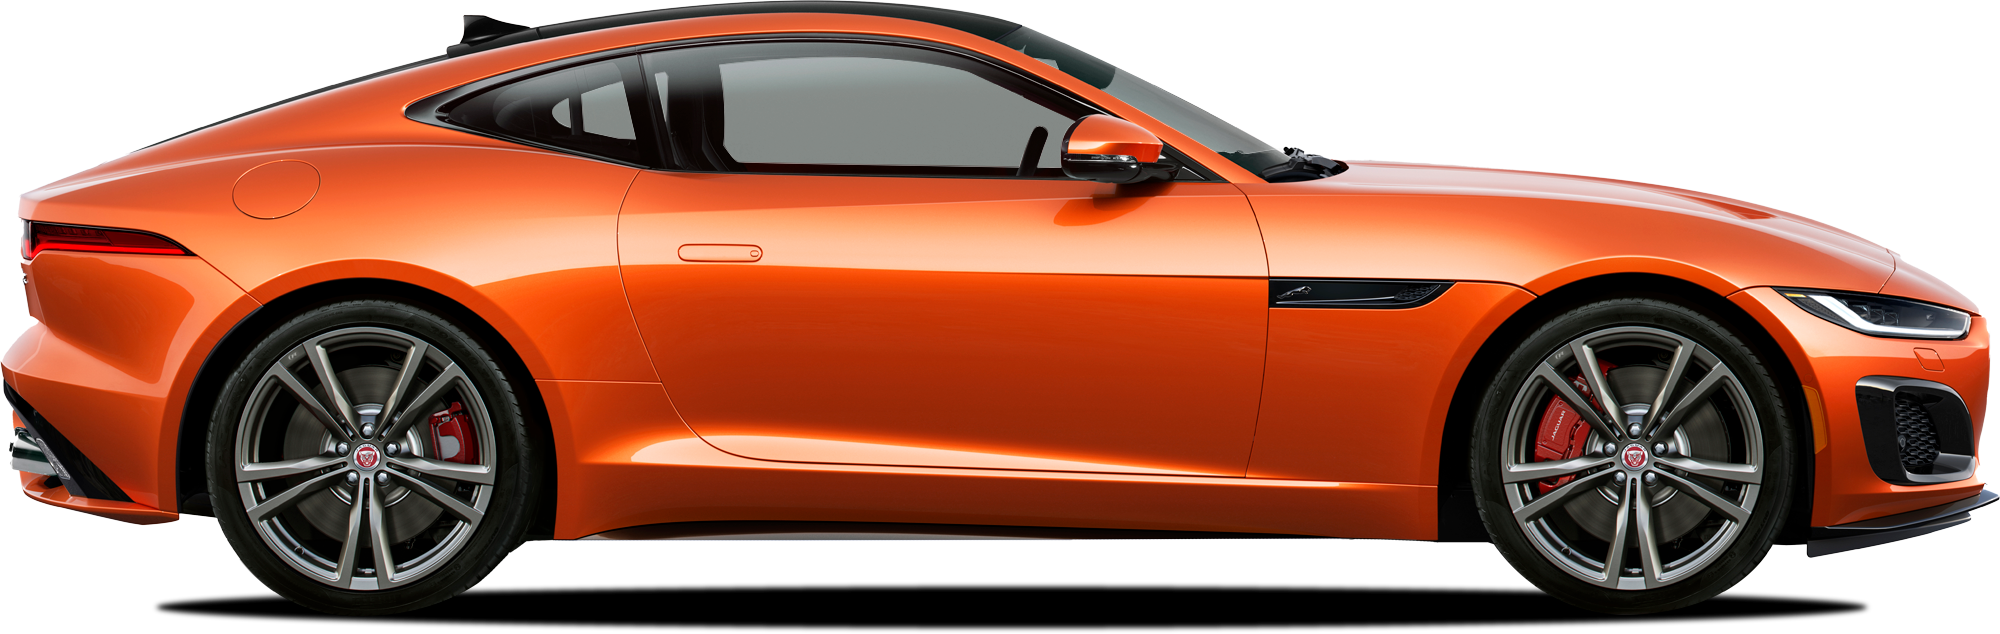 2021 Jaguar F-TYPE Coupe P300